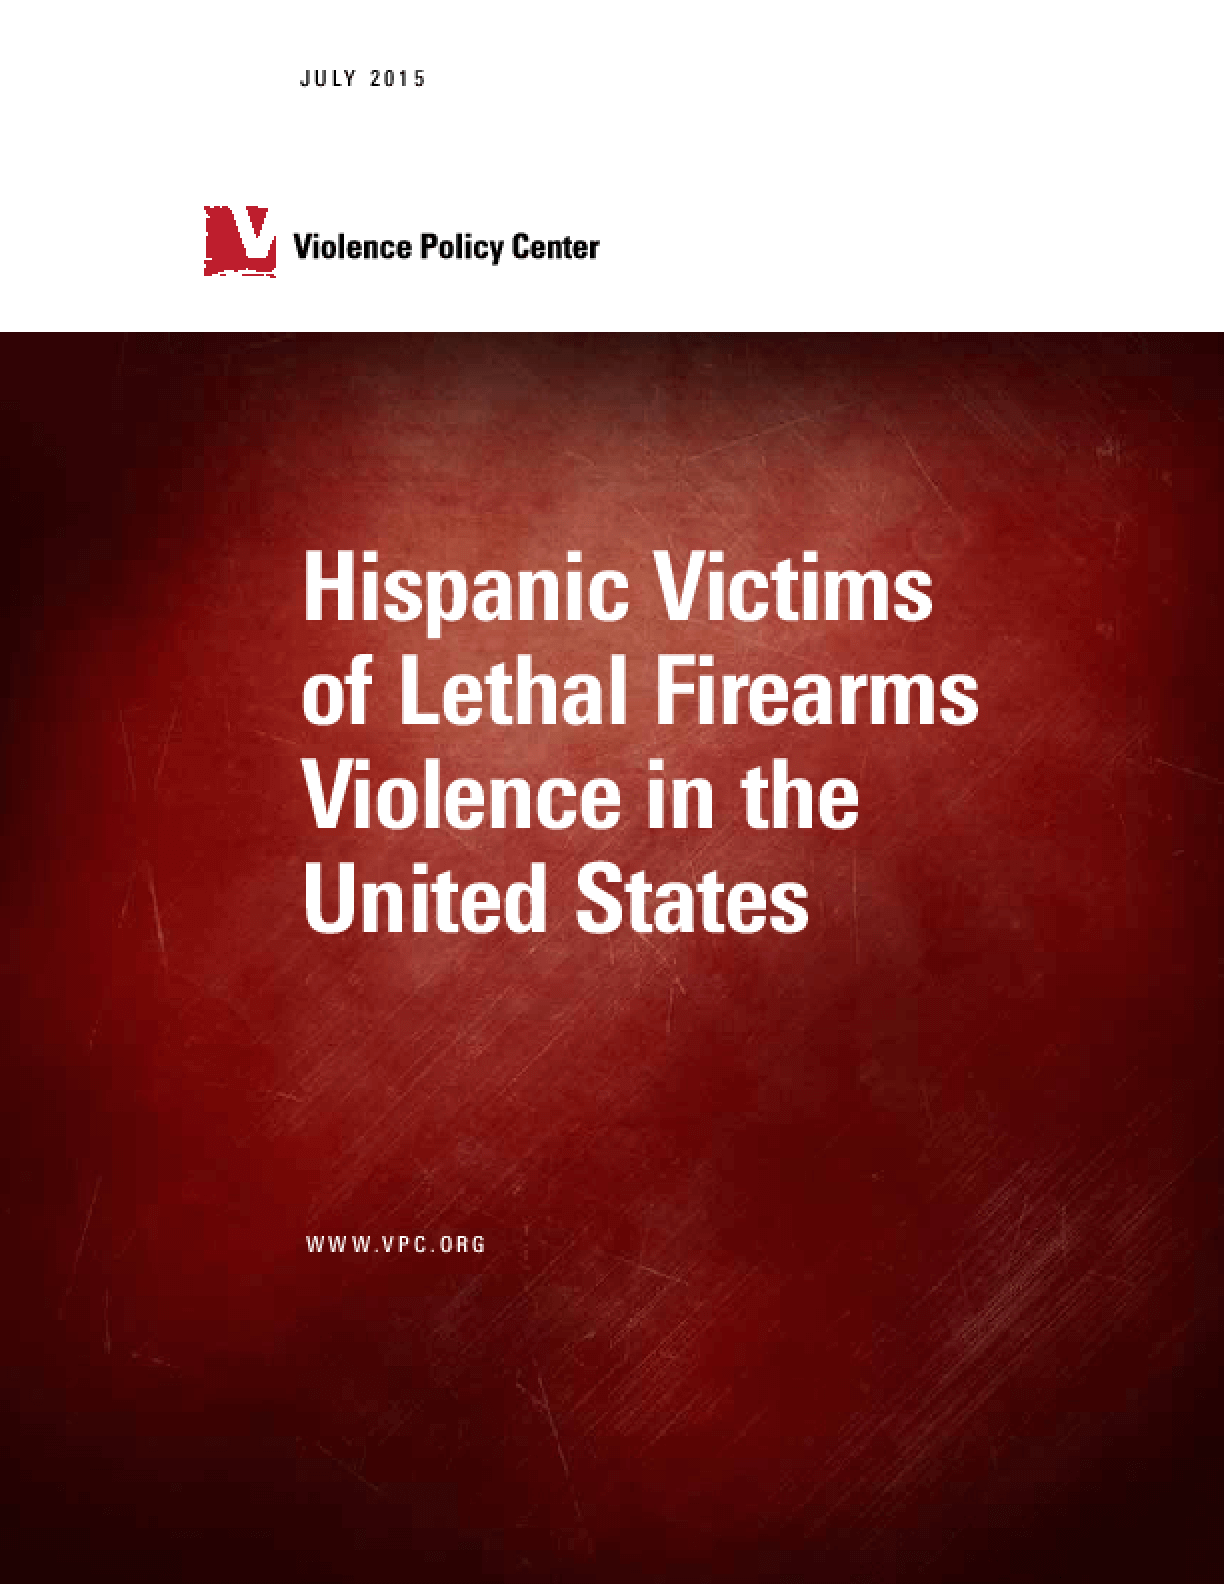 Hispanic Victims of Lethal Firearms Violence in the United States (2015)